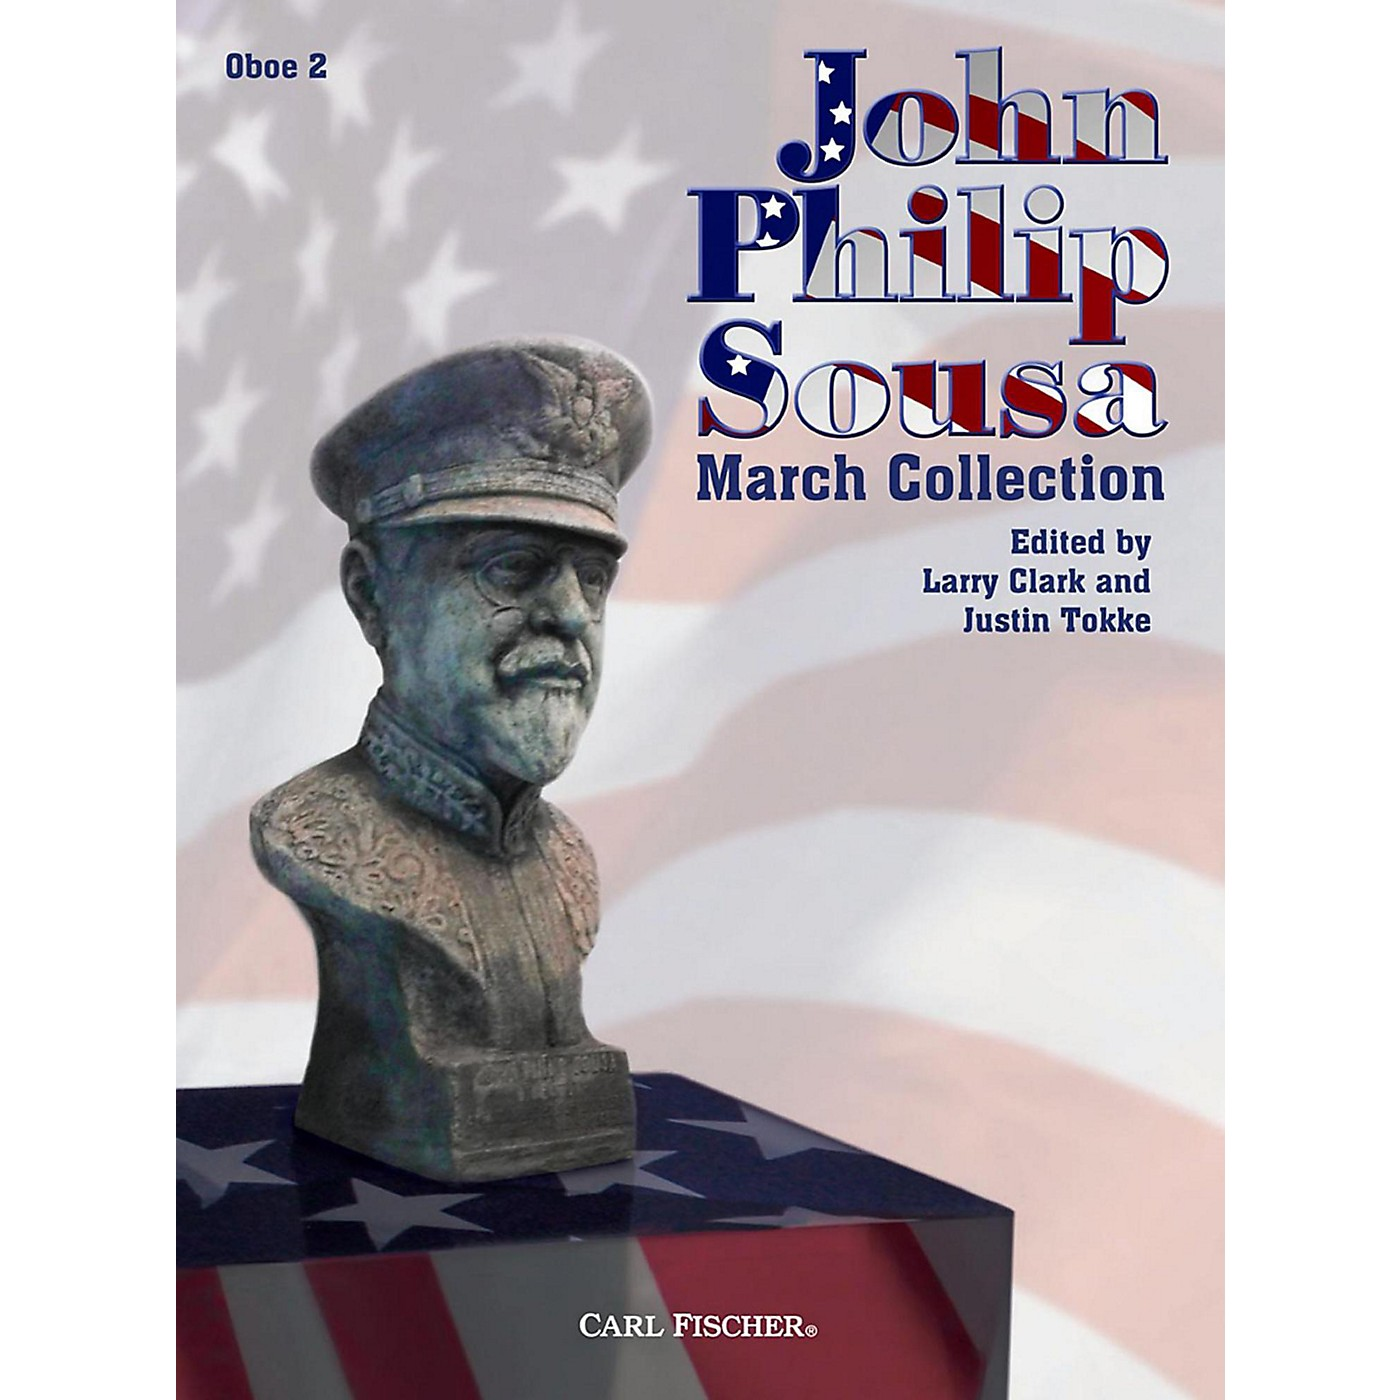 Carl Fischer John Philip Sousa March Collection - Oboe 2 thumbnail